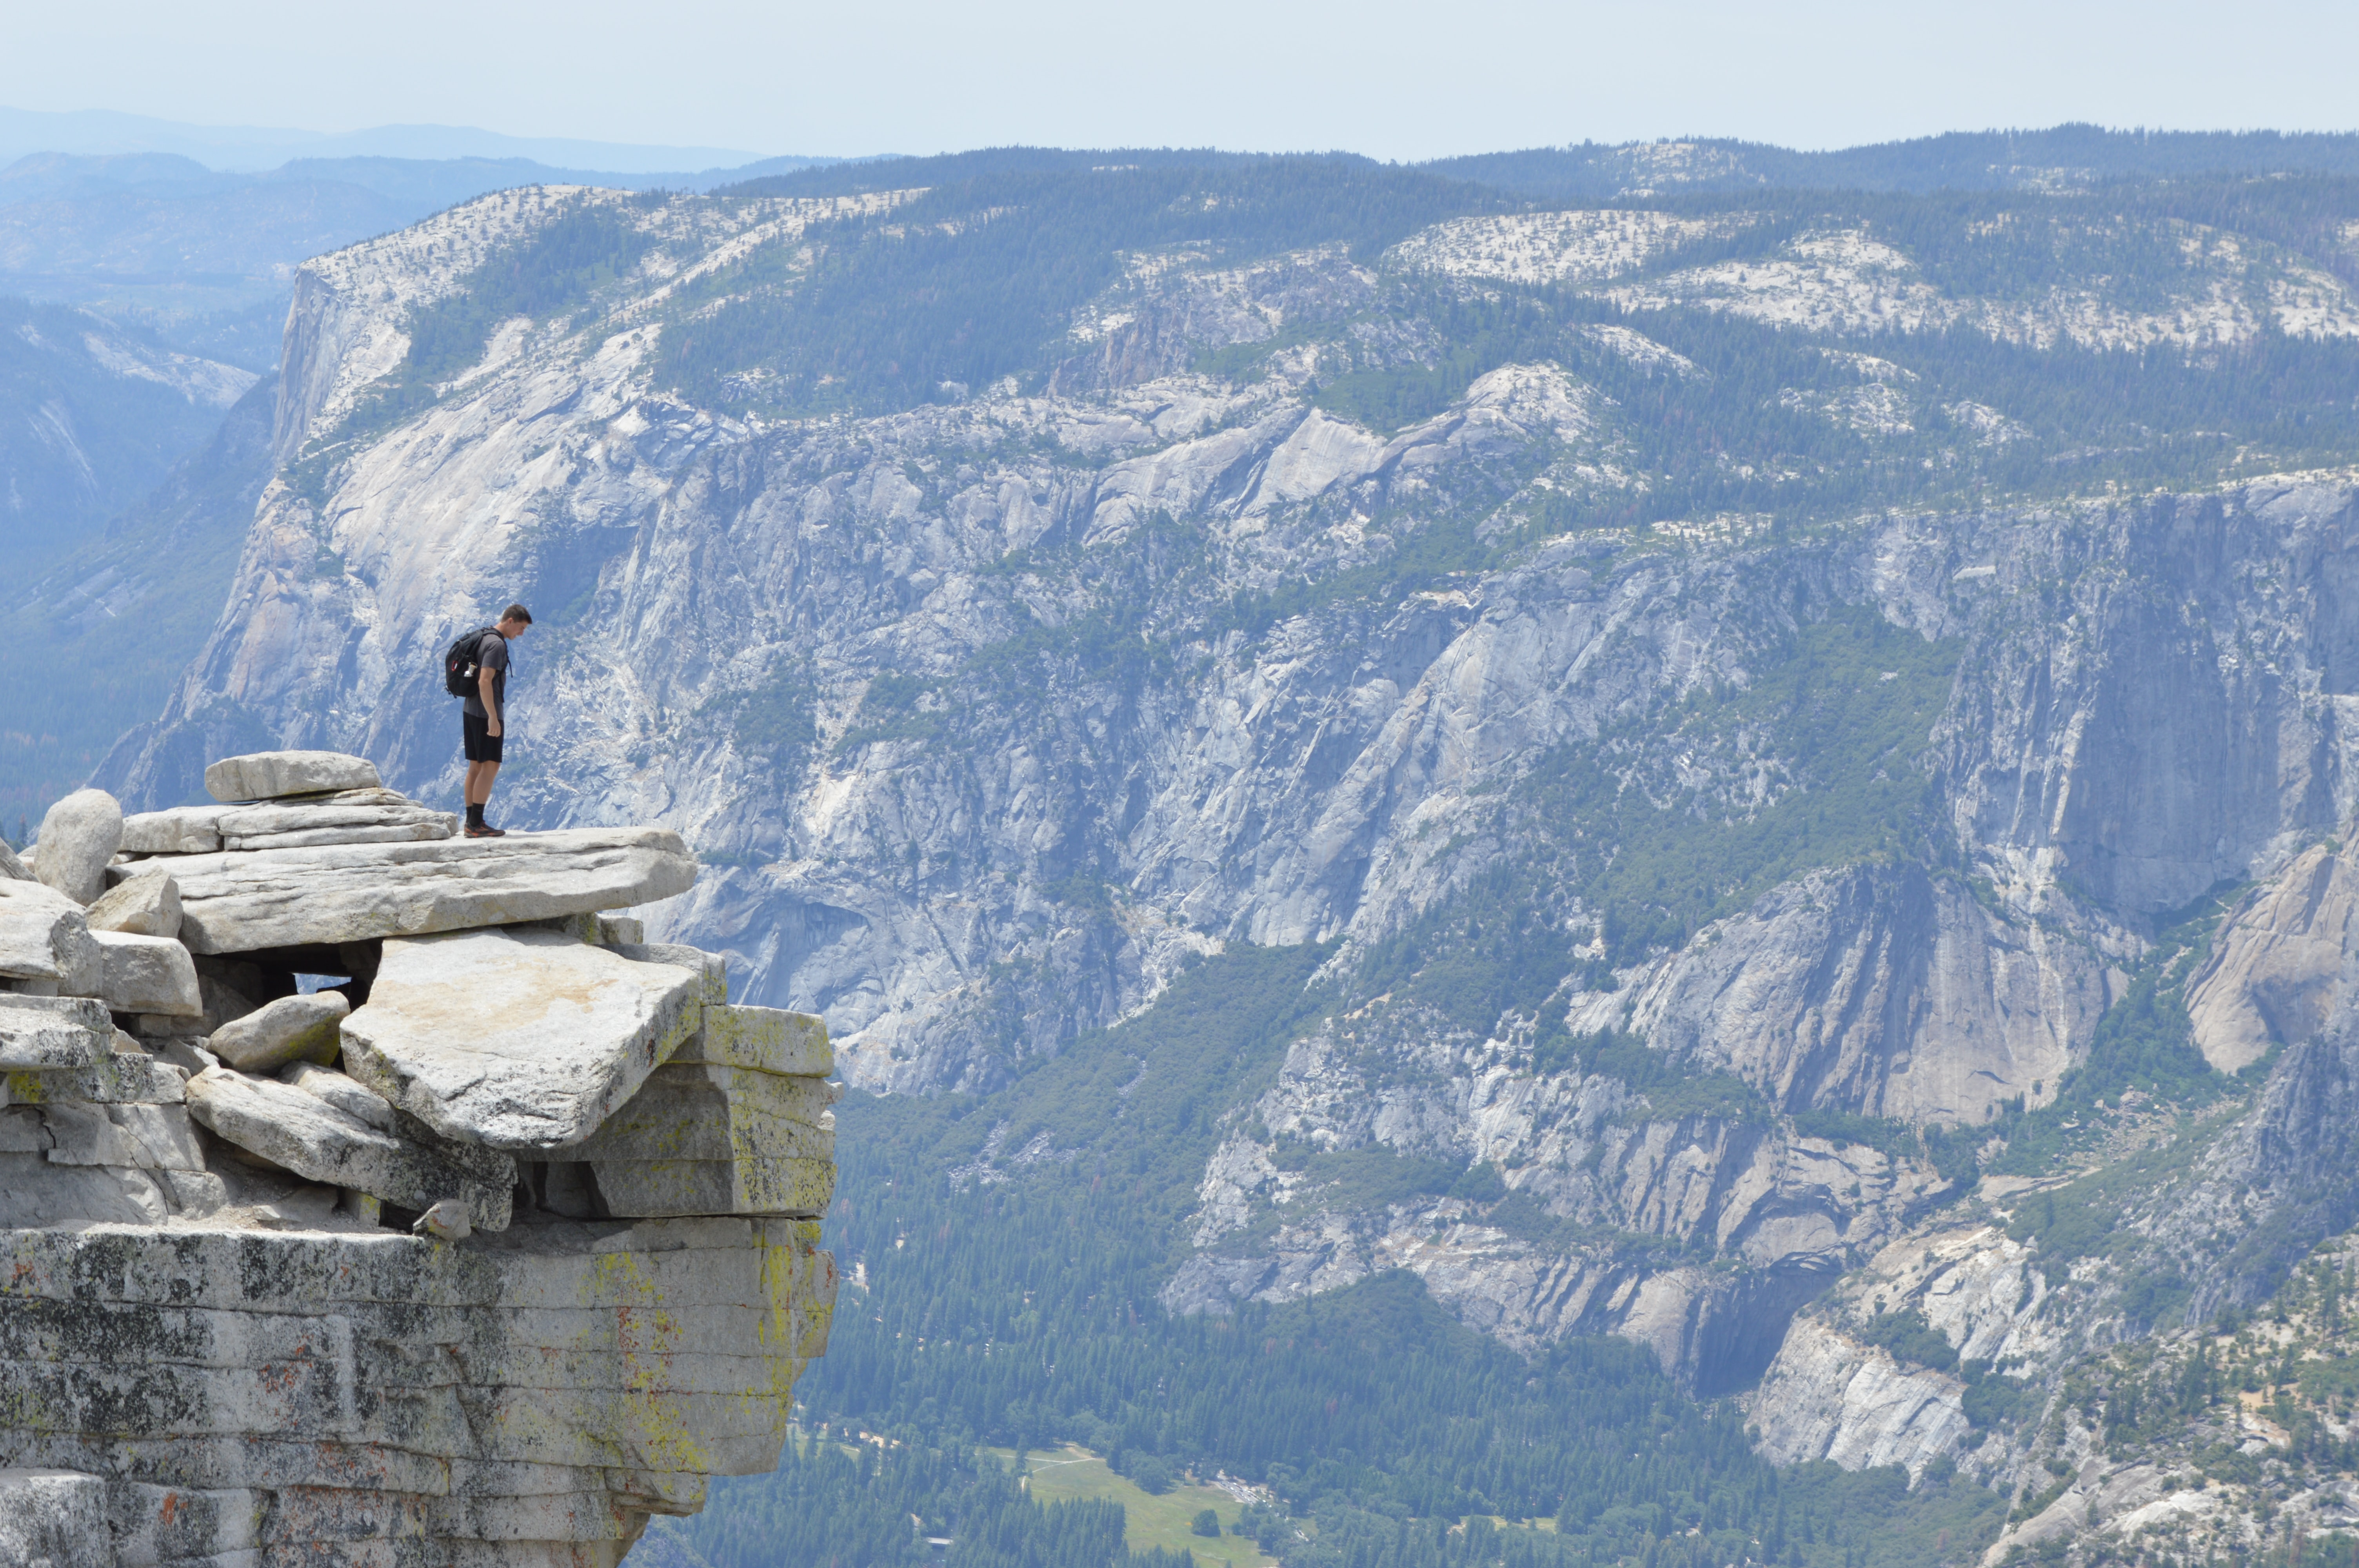 A male hiker looking down a precipice over the deep valley